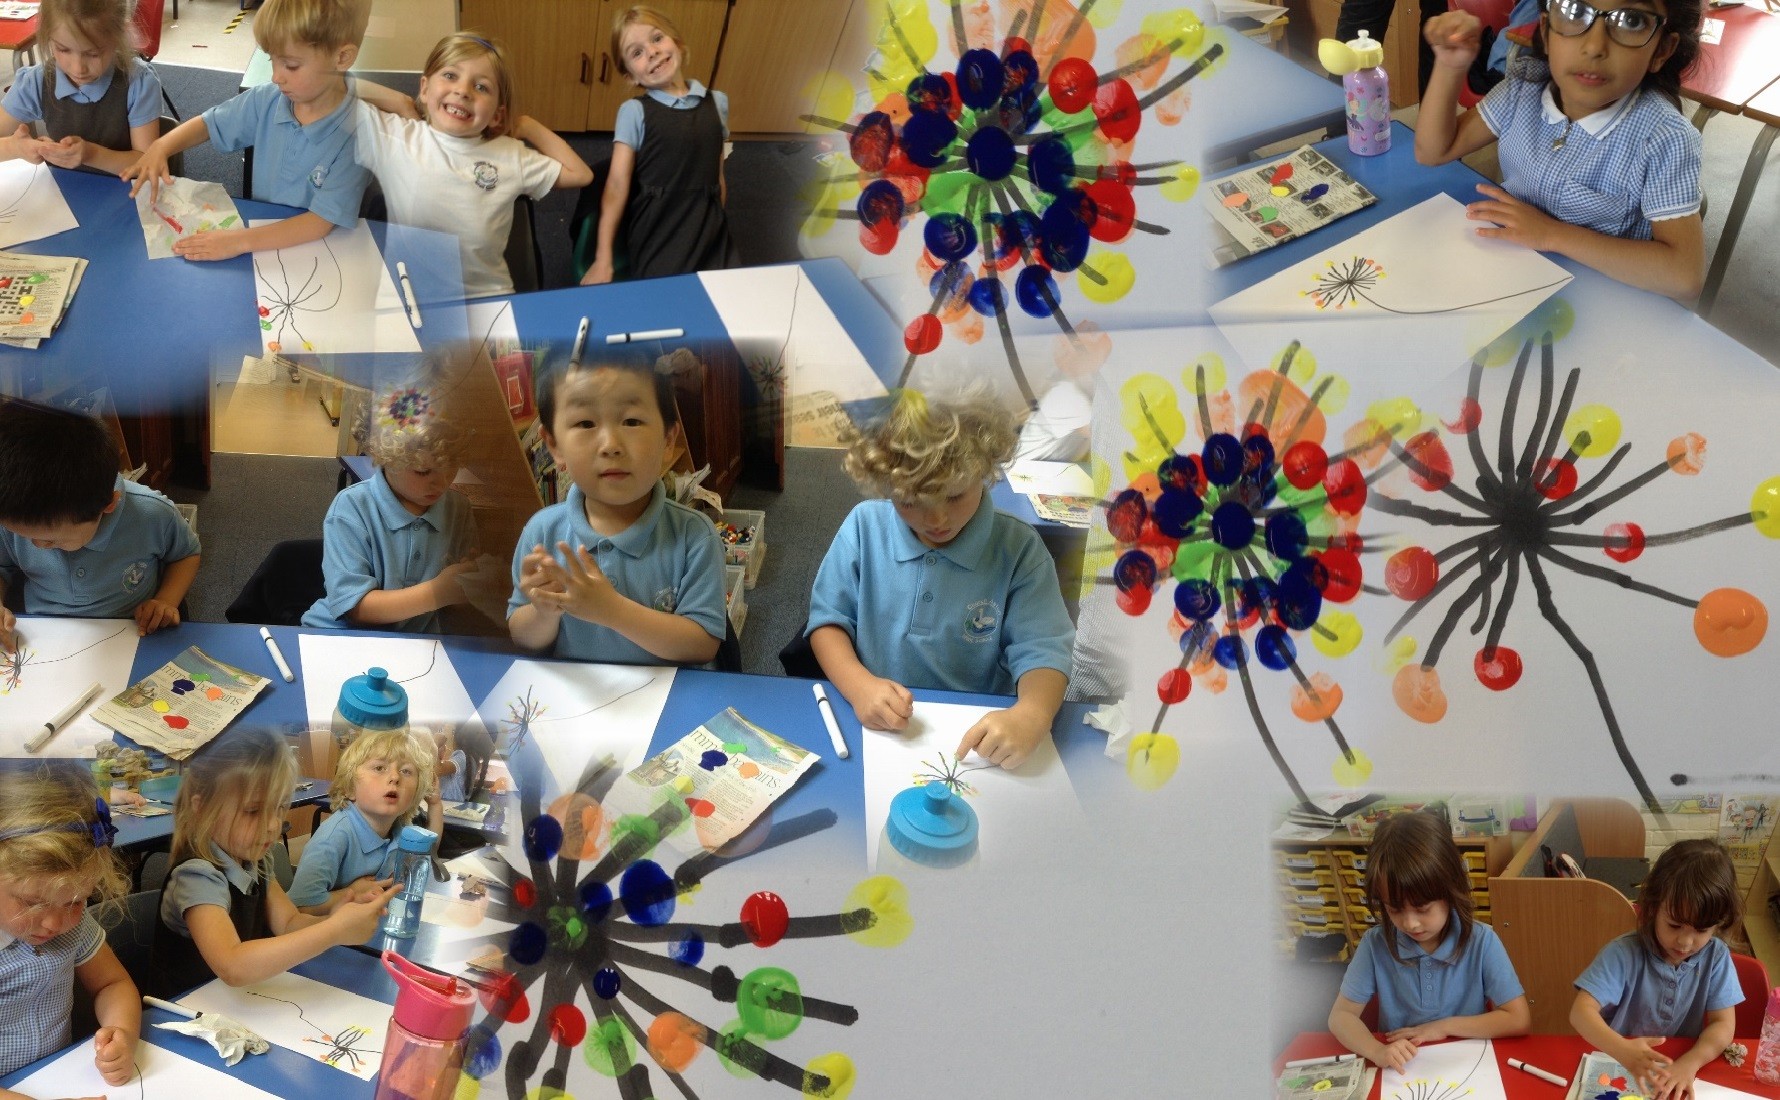 In Art Club we finger painted dandelions.